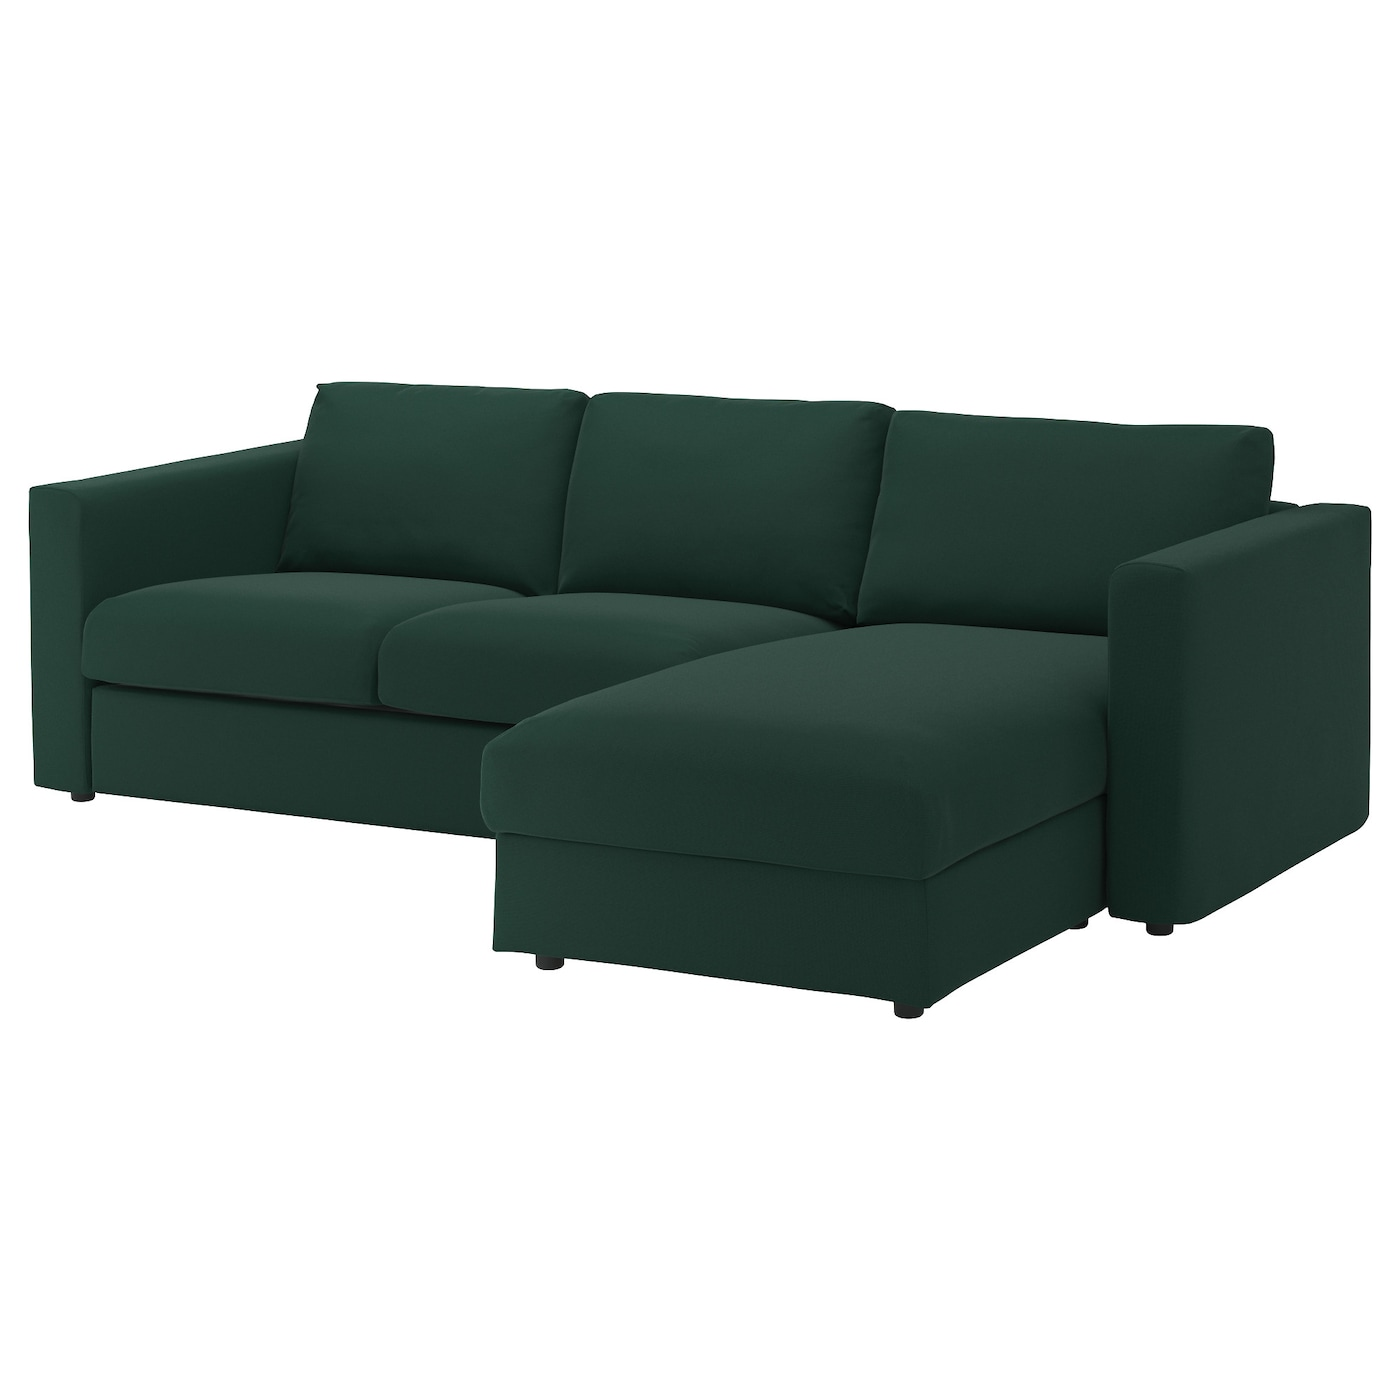 Vimle 3 seat sofa with chaise longue gunnared dark green for Chaise longue furniture